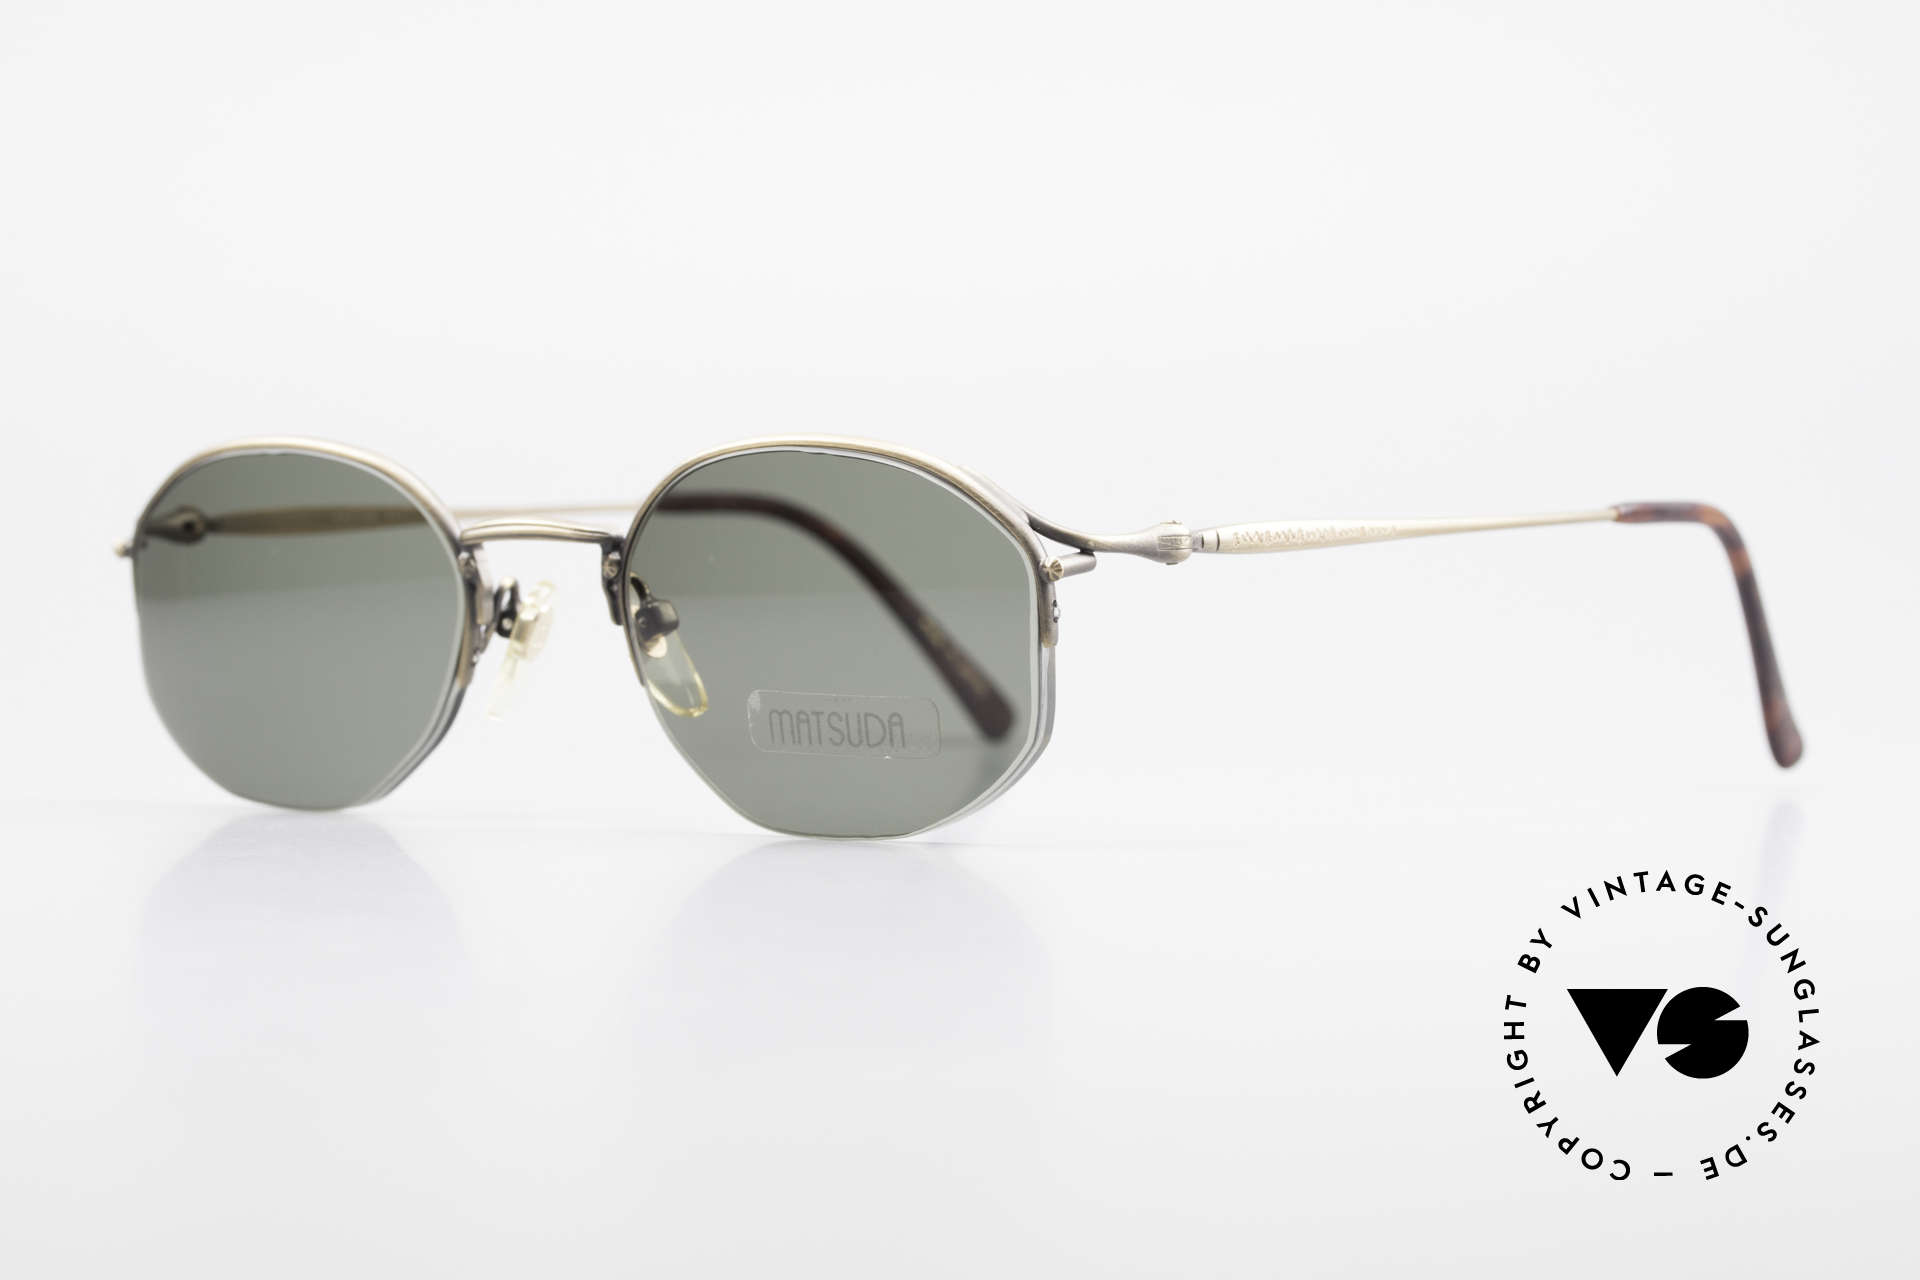 Matsuda 2855 Extraordinary Vintage Frame, the GREEN sun lenses are semi-rimless mounted, Made for Men and Women